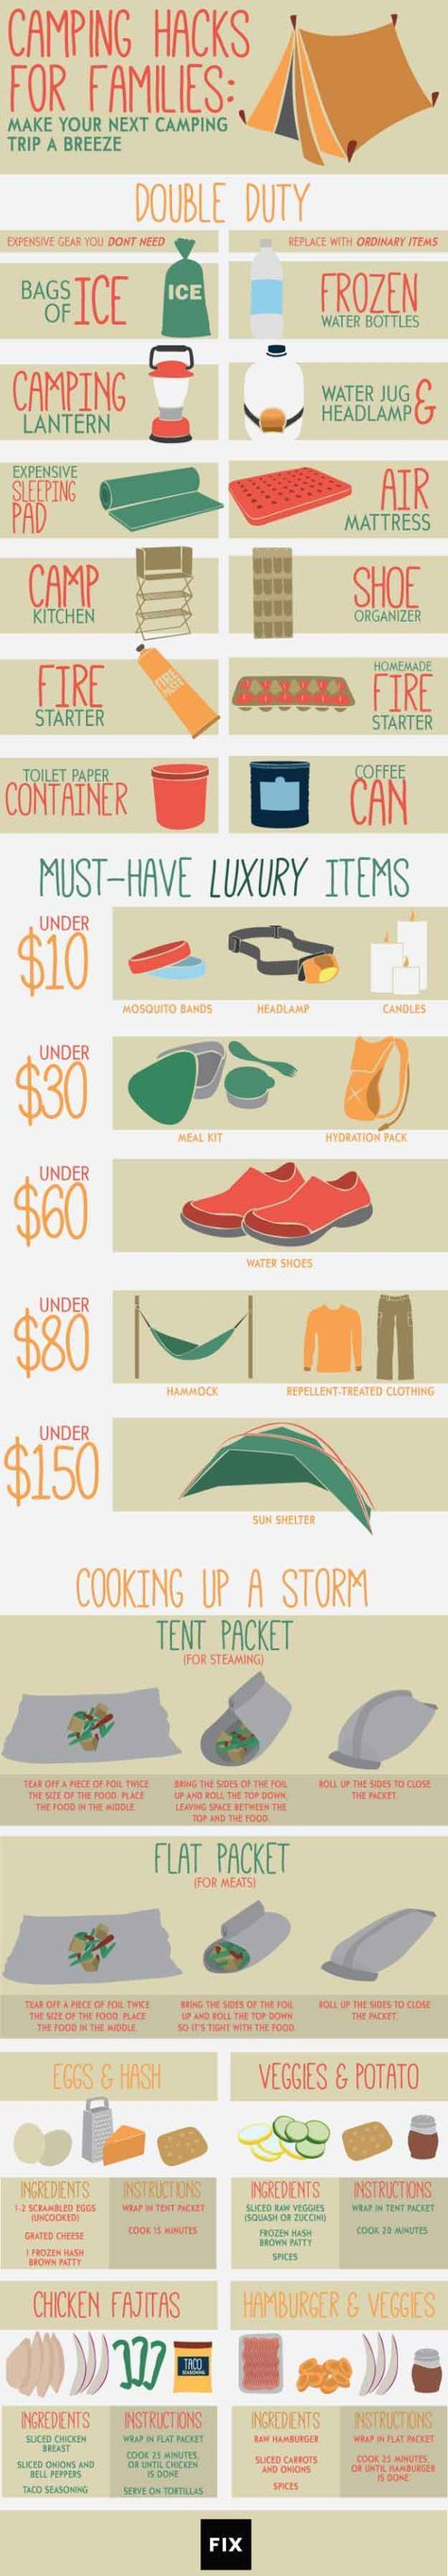 Photo of Camping Hacks for Families | Camping Hacks To Make Life Easier